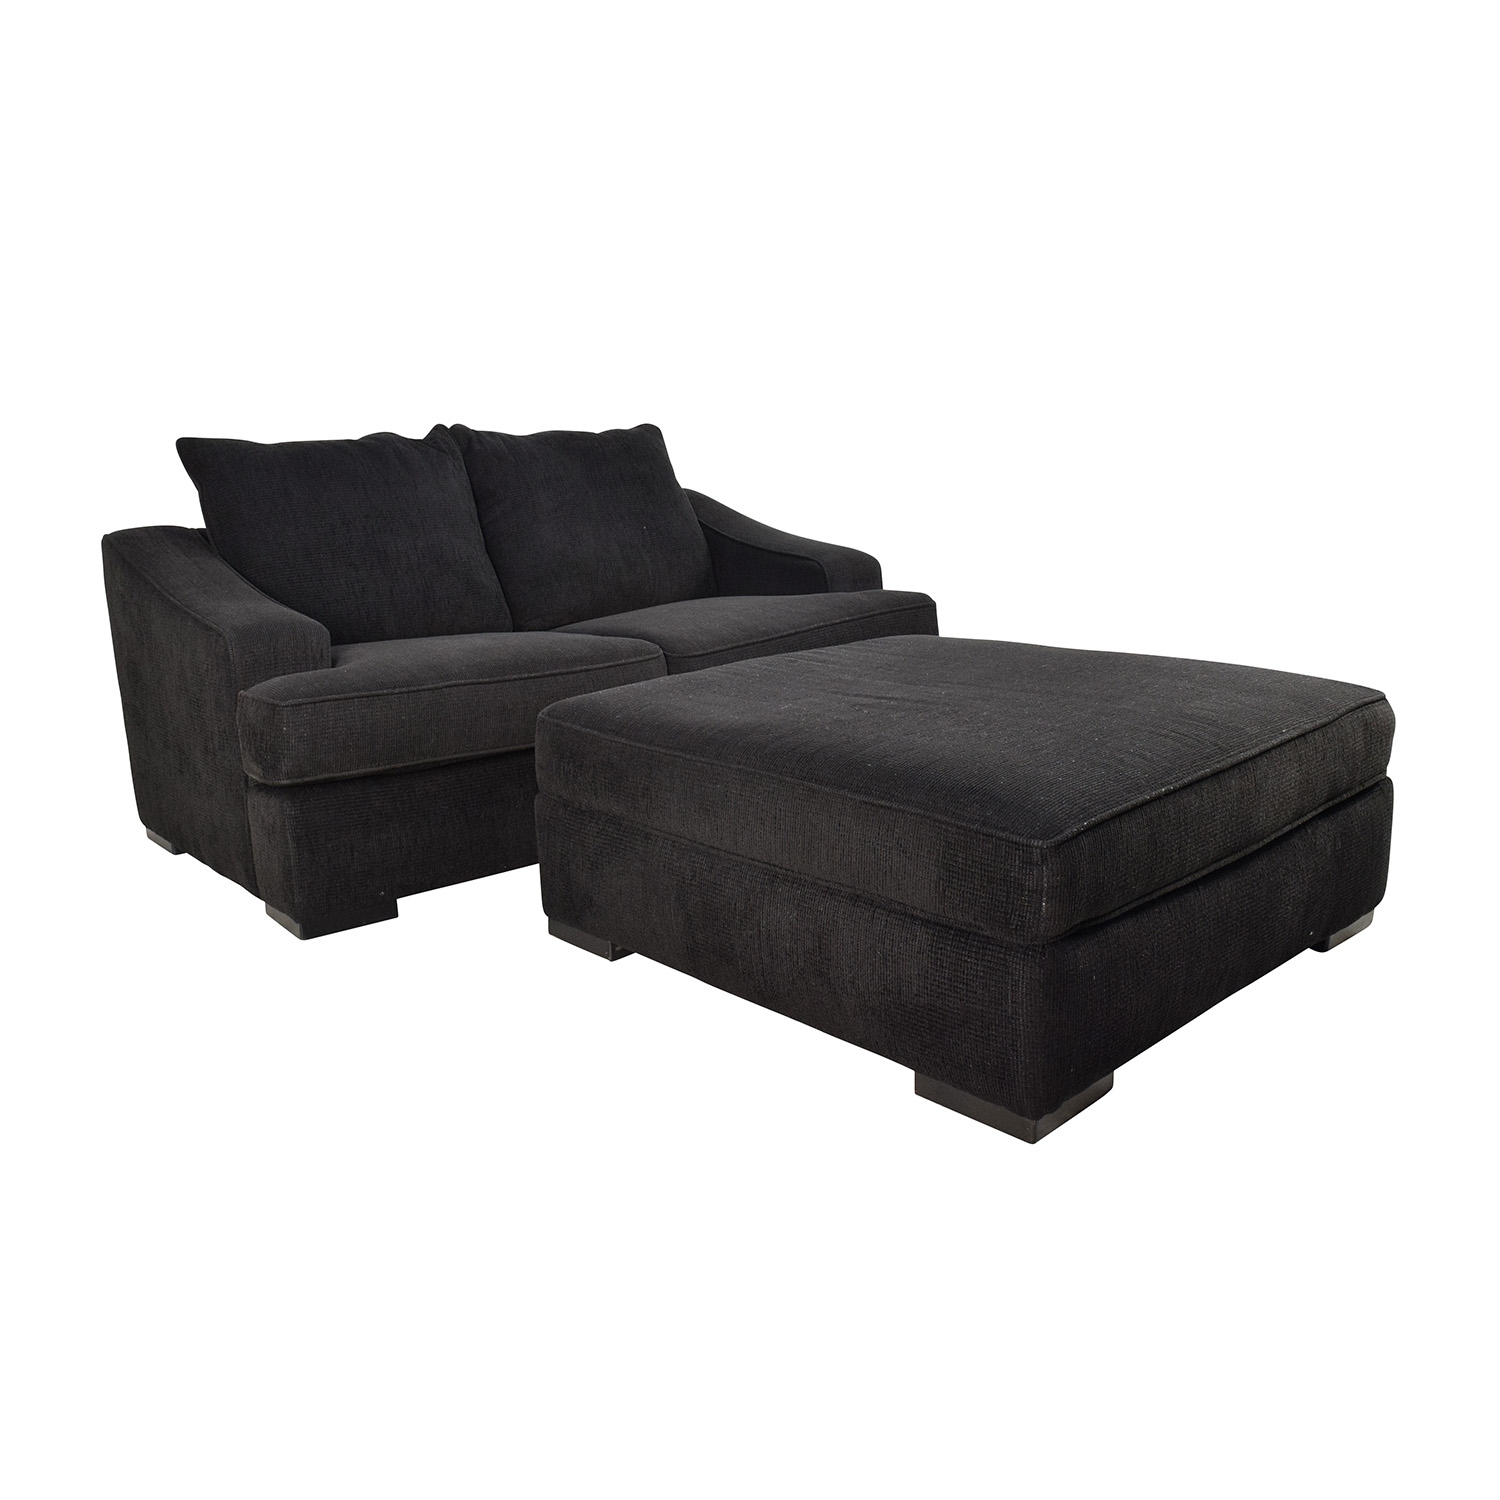 67% Off – Black Cloth Loveseat And Matching Oversized Ottoman / Sofas With Loveseats With Ottoman (Photo 7 of 10)